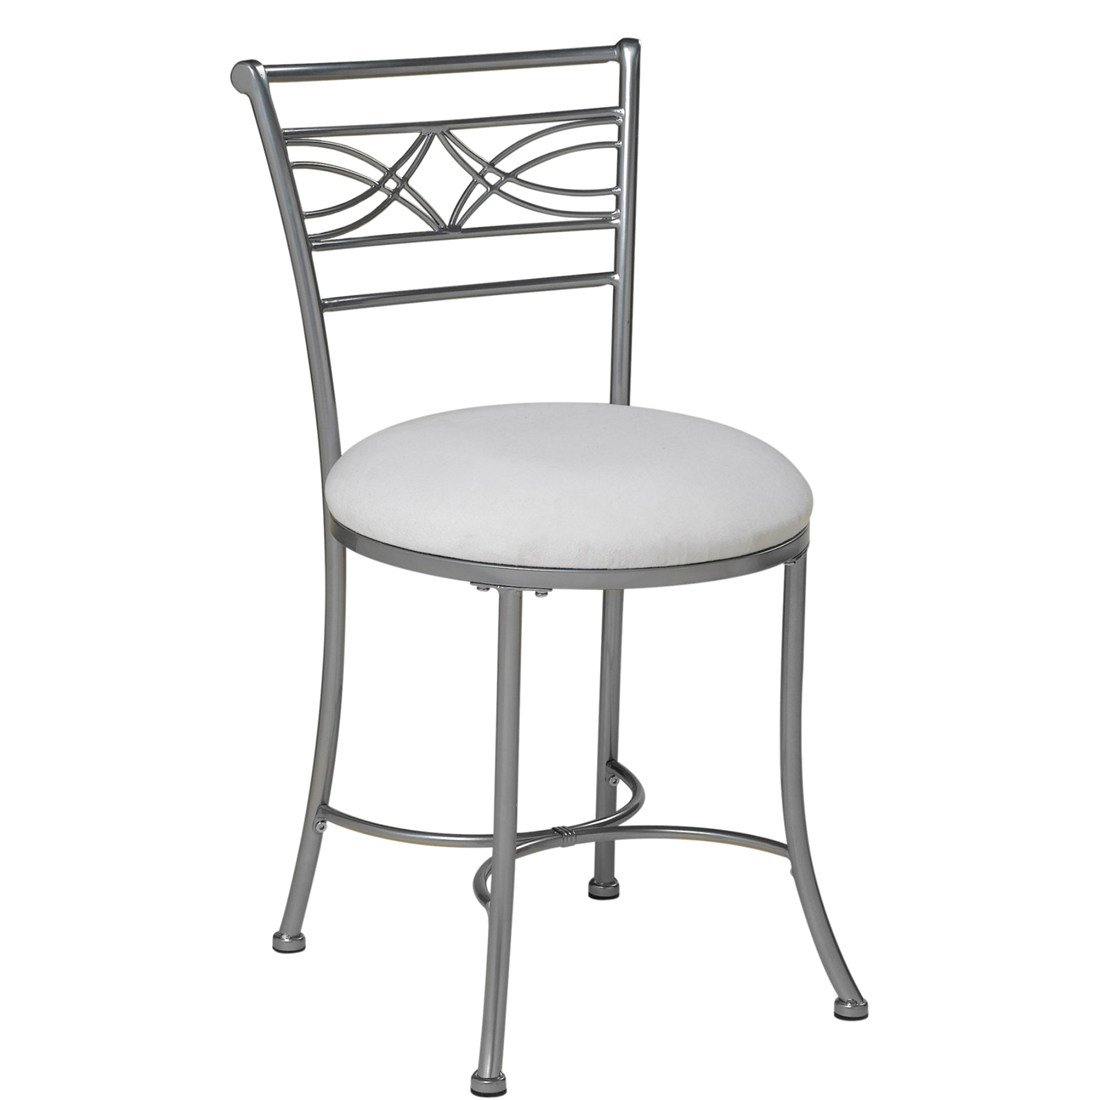 Best Chrome Vanity Stool Bedroom Bath Makeup Decor Seat Padded Cushion White Chair Ebay With Pictures